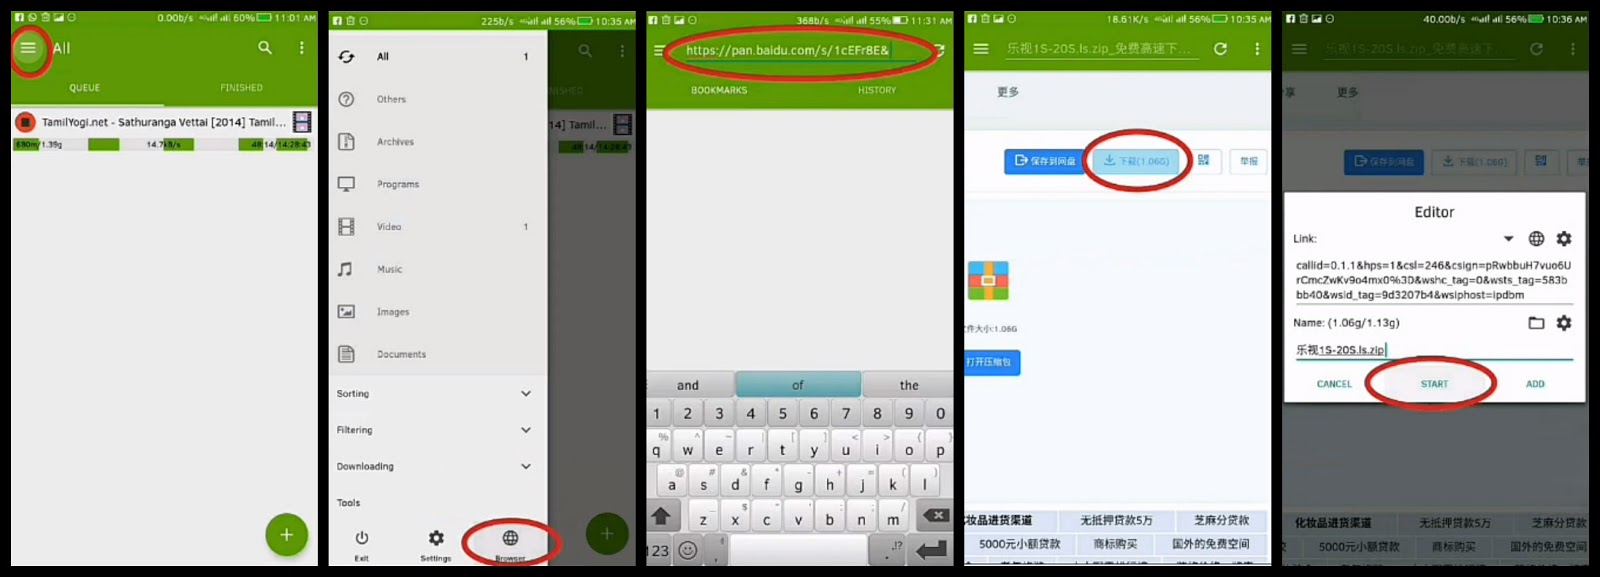 Download any file easily from Pan Baidu cloud without Account (no